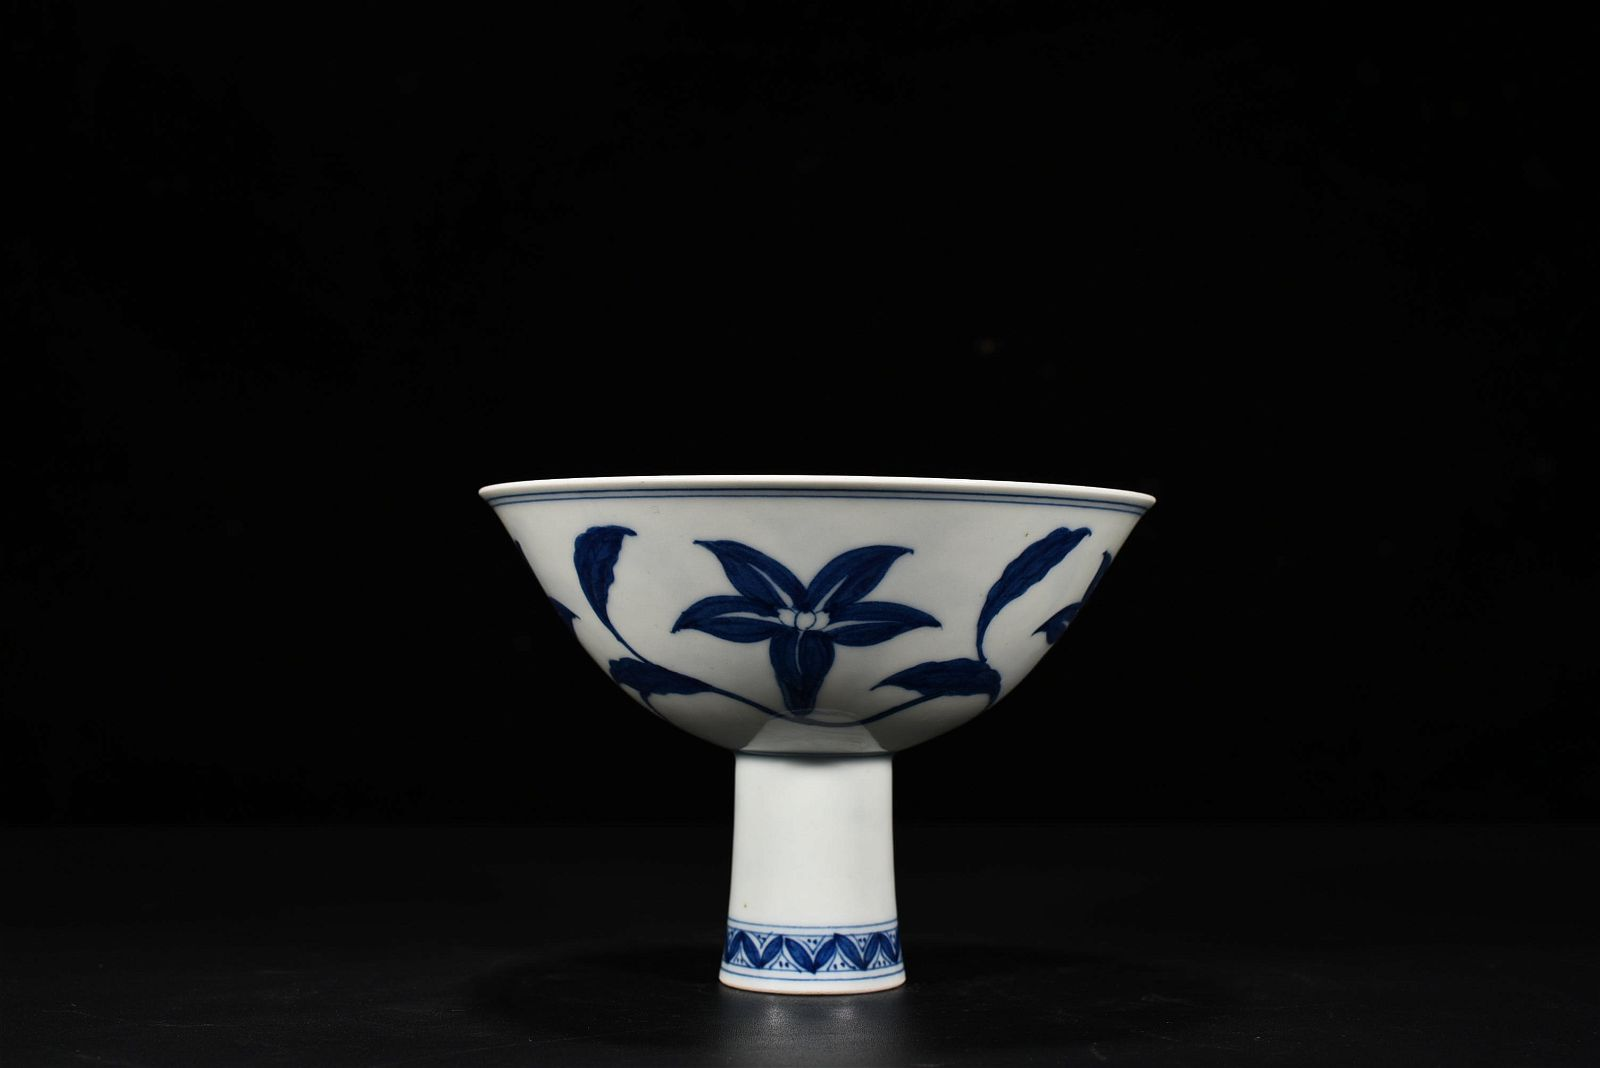 A Blue and White Steam Cup